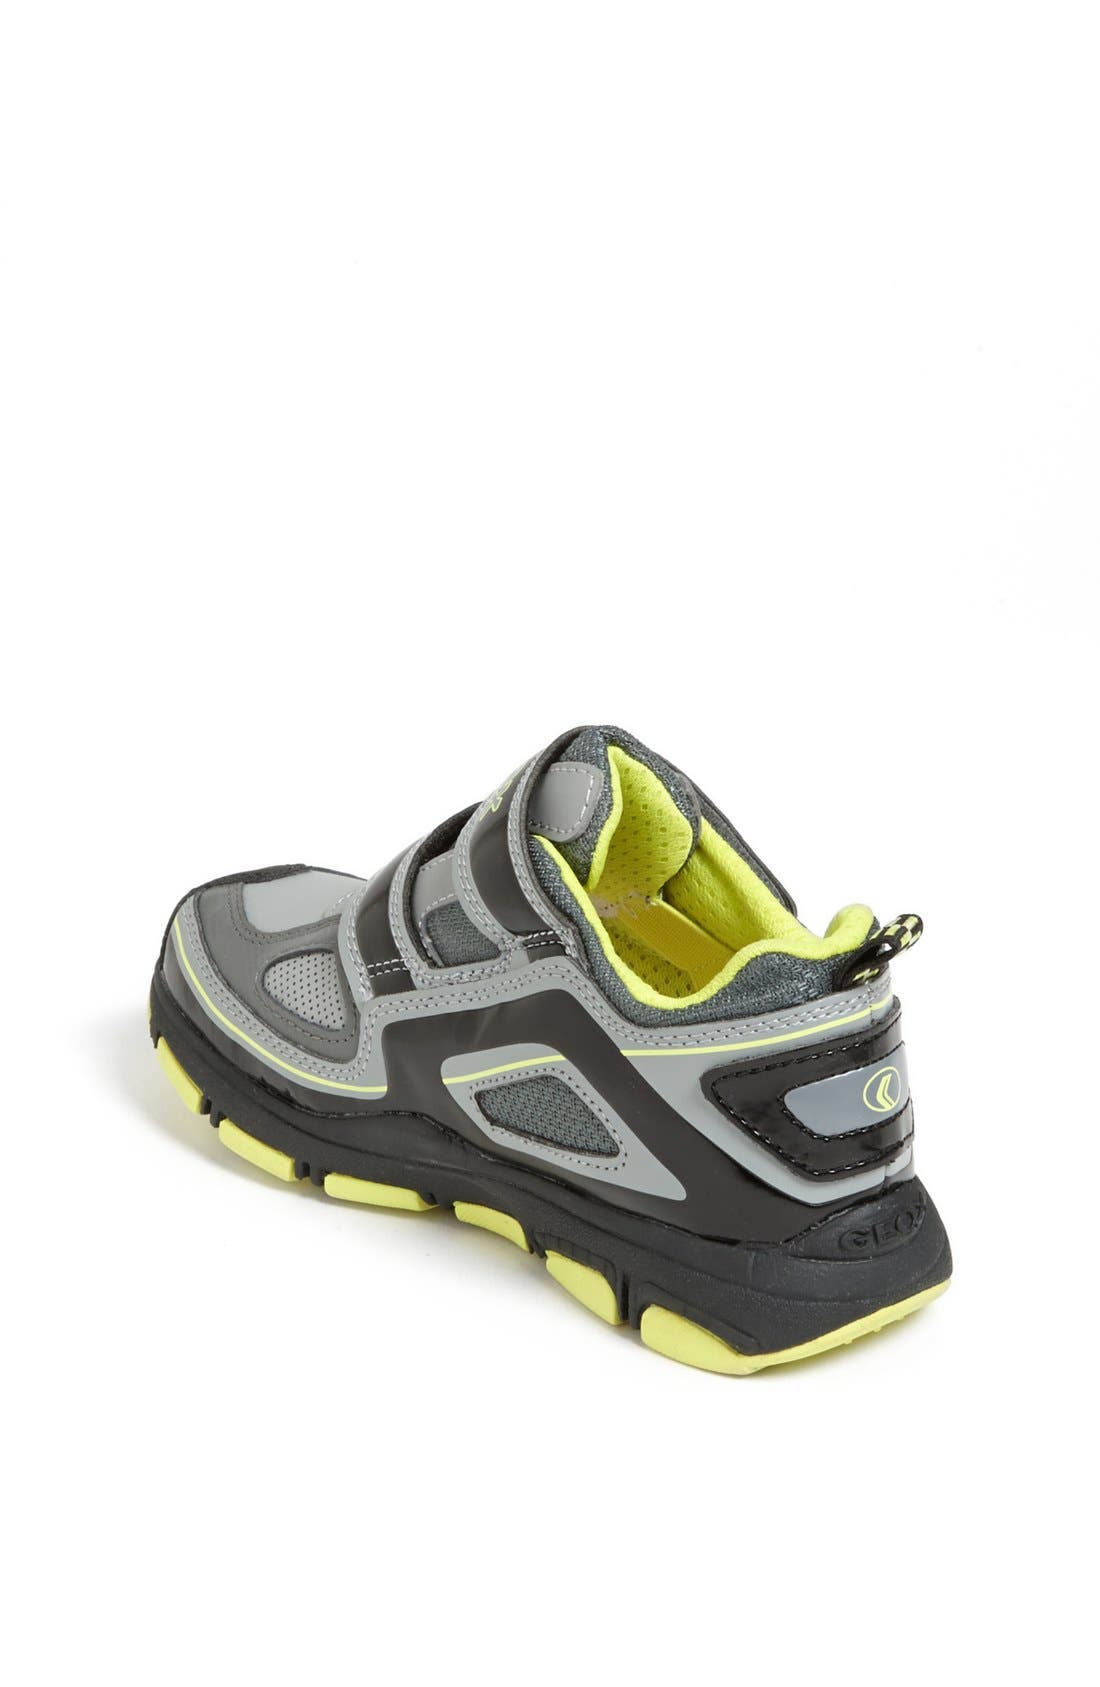 Alternate Image 2  - Geox 'Torque 4' Sneaker (Toddler, Little Kid & Big Kid)